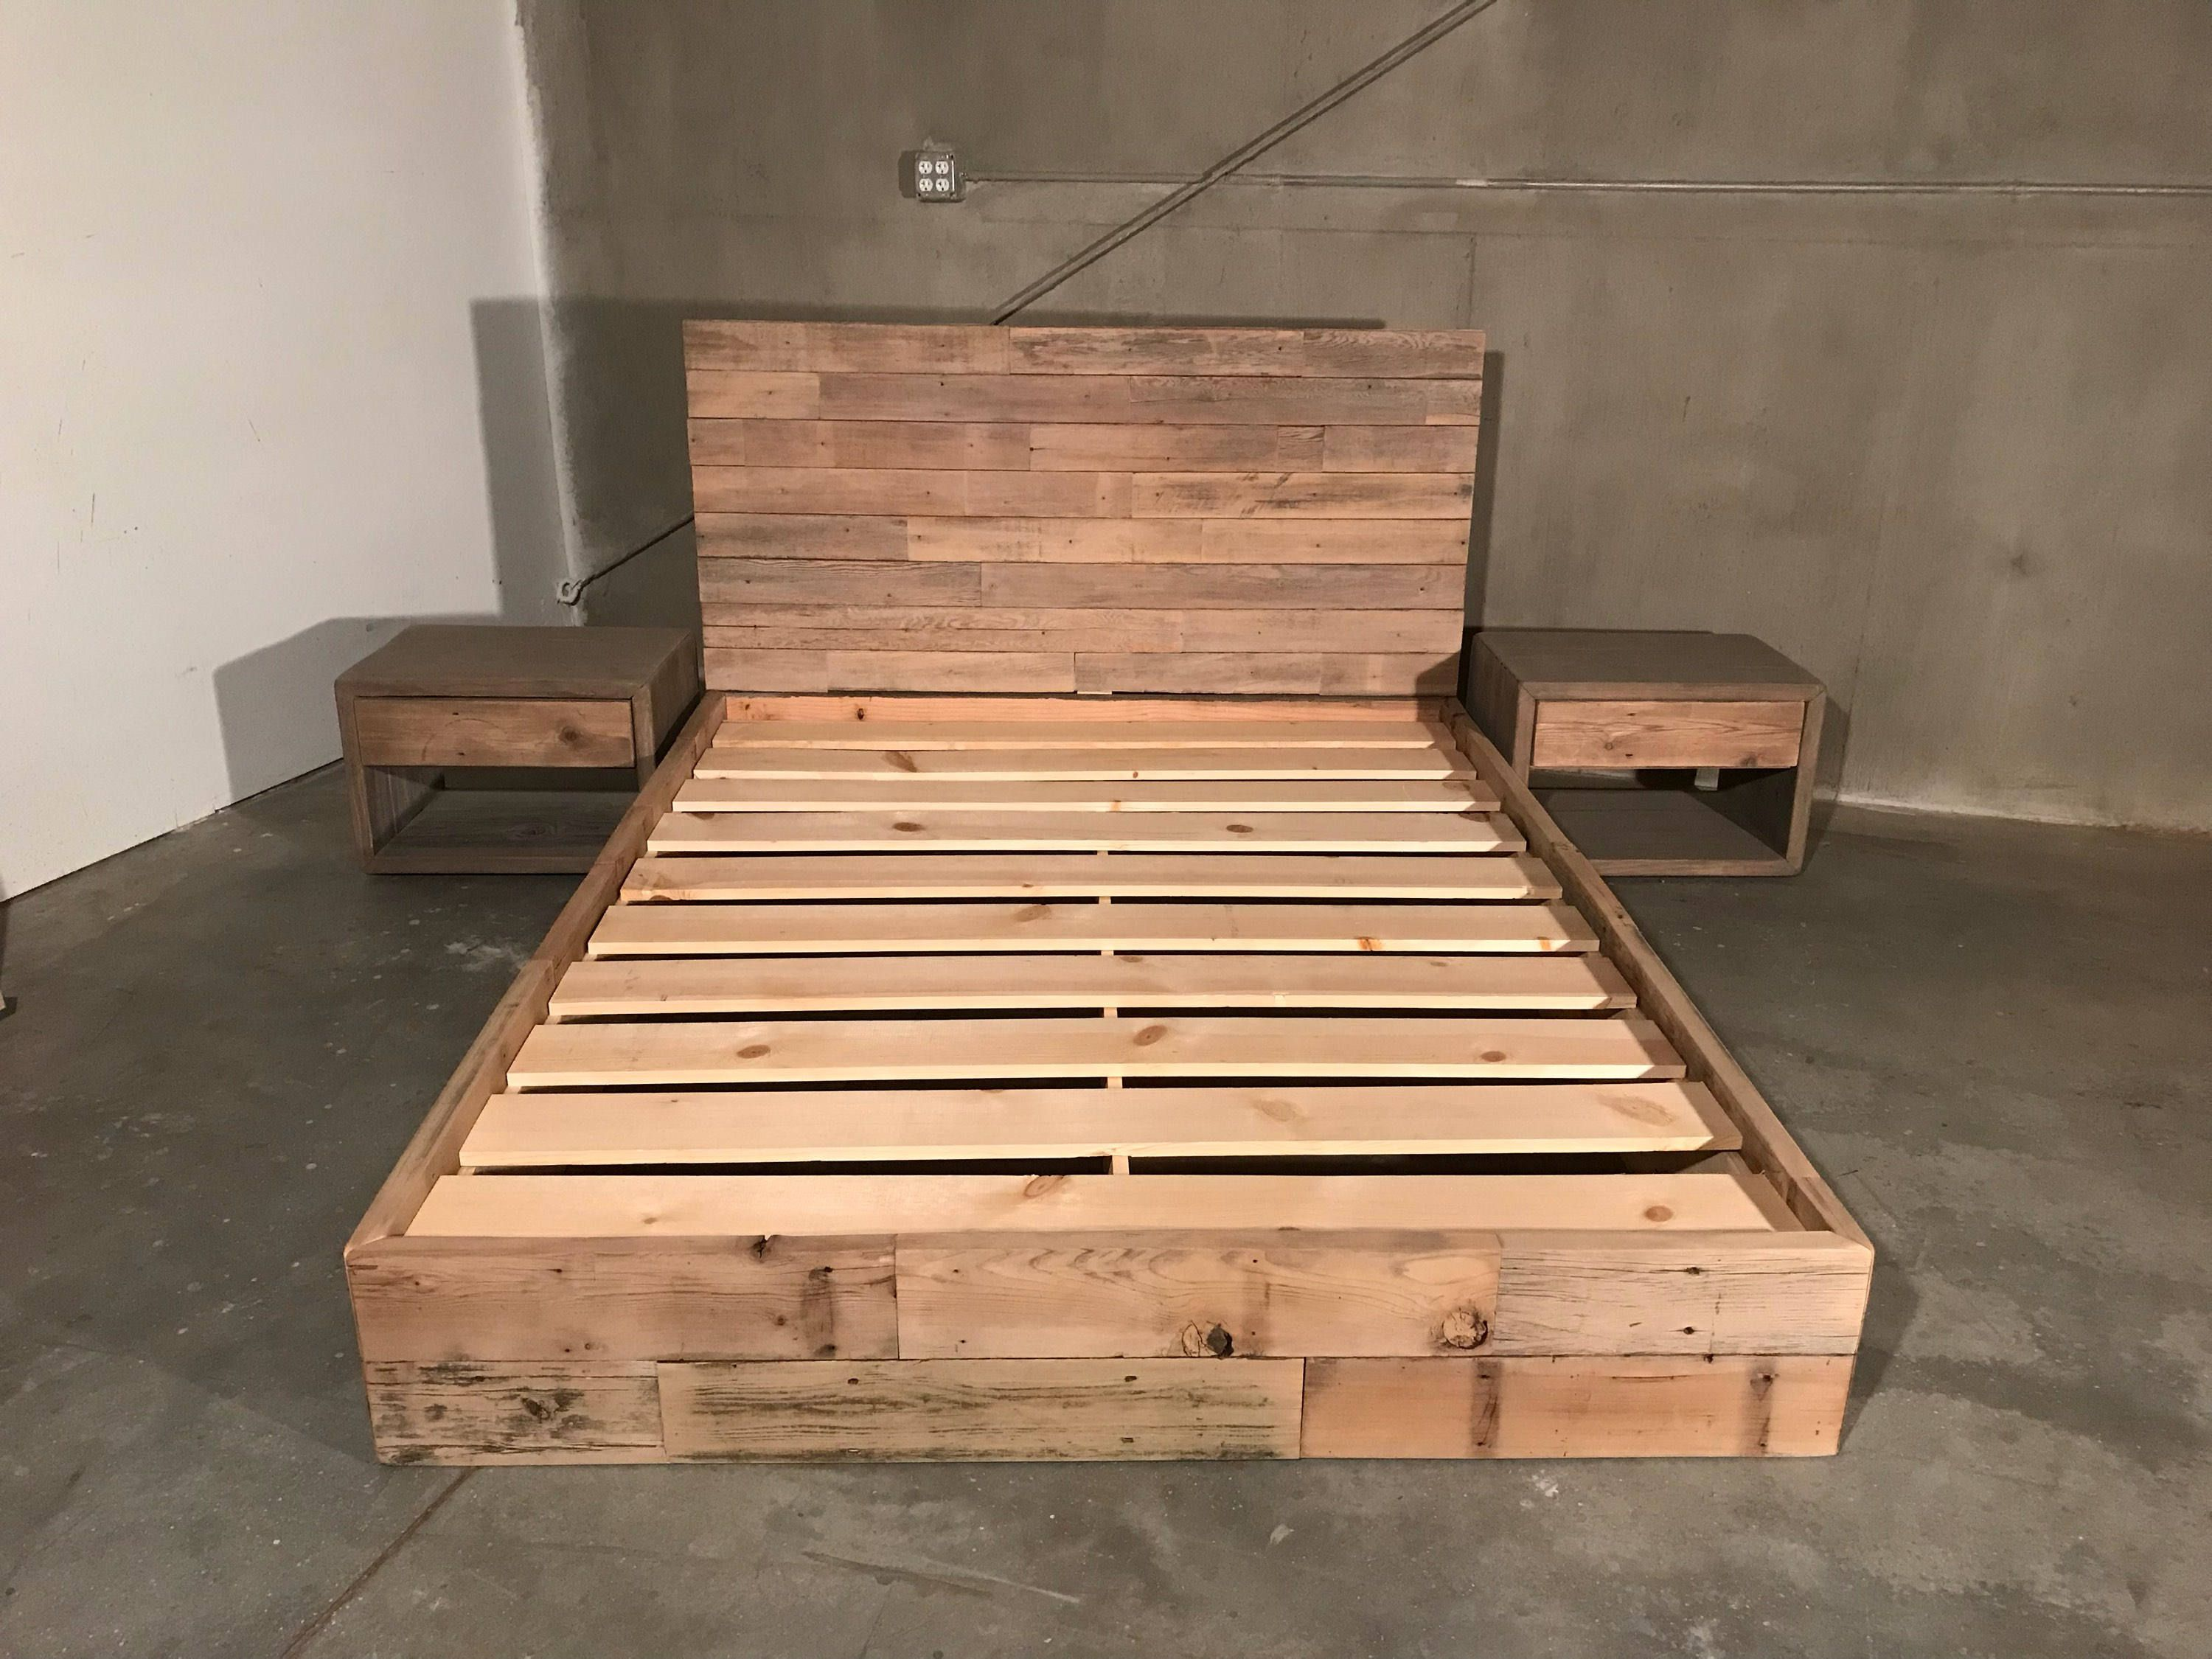 The New York Queen Reclaimed Patched Wood Bed Headboard Etsy